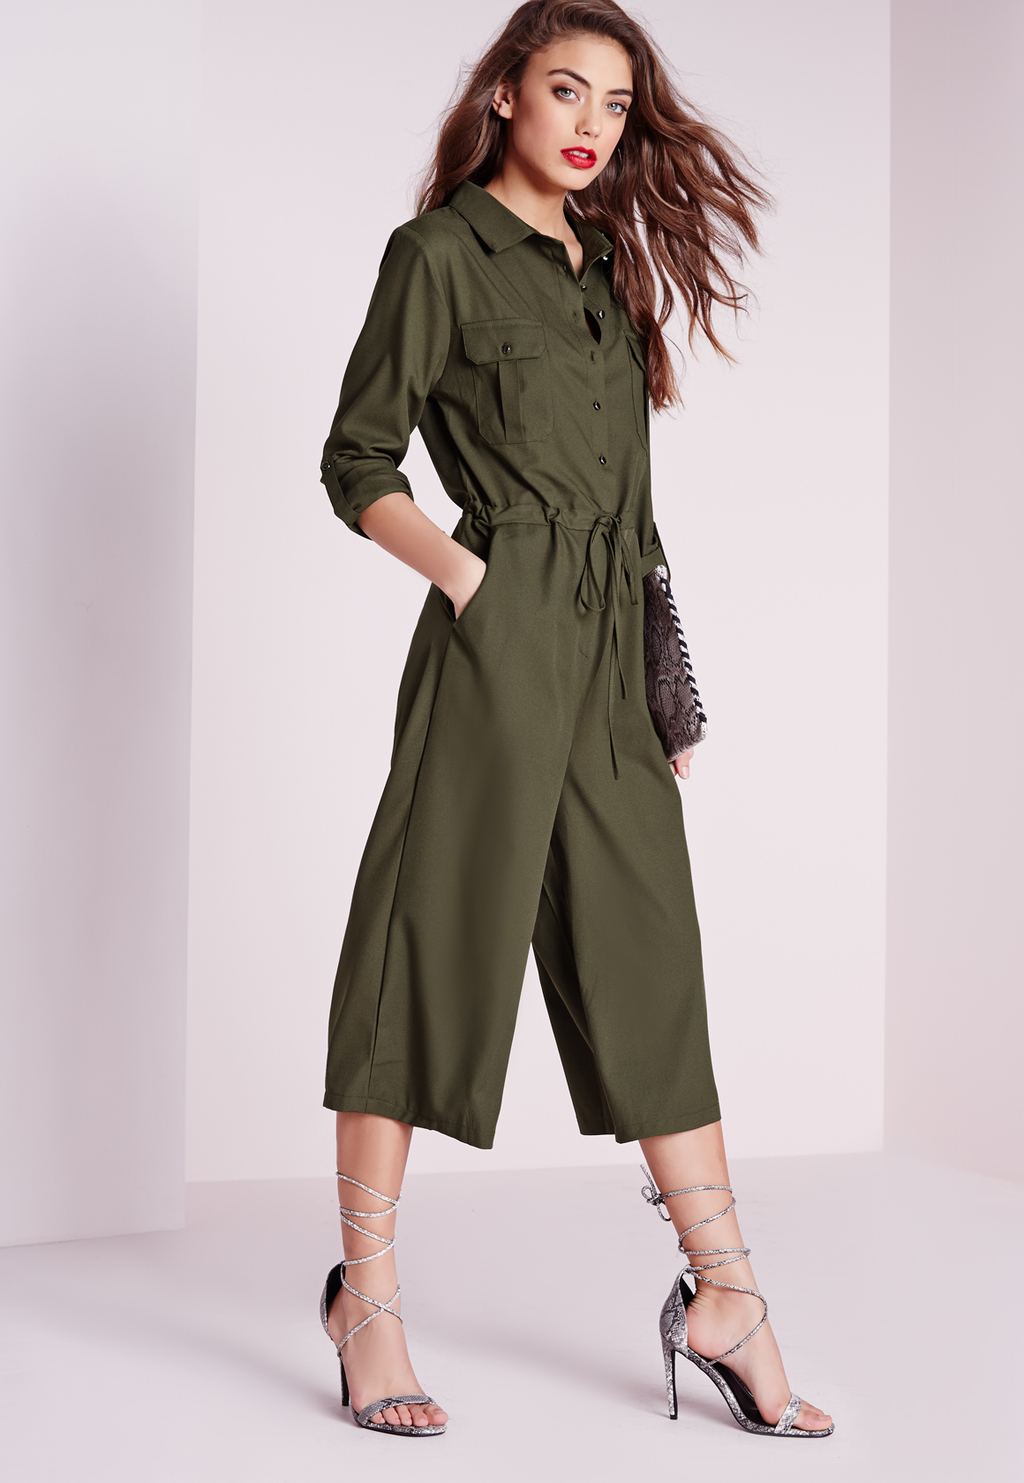 Utility Button Culotte Jumpsuit Khaki, Beige - neckline: shirt collar/peter pan/zip with opening; pattern: plain; waist detail: belted waist/tie at waist/drawstring; predominant colour: dark green; occasions: casual; length: calf length; fit: body skimming; fibres: viscose/rayon - 100%; sleeve length: long sleeve; sleeve style: standard; style: jumpsuit; pattern type: fabric; texture group: other - light to midweight; season: s/s 2016; wardrobe: highlight